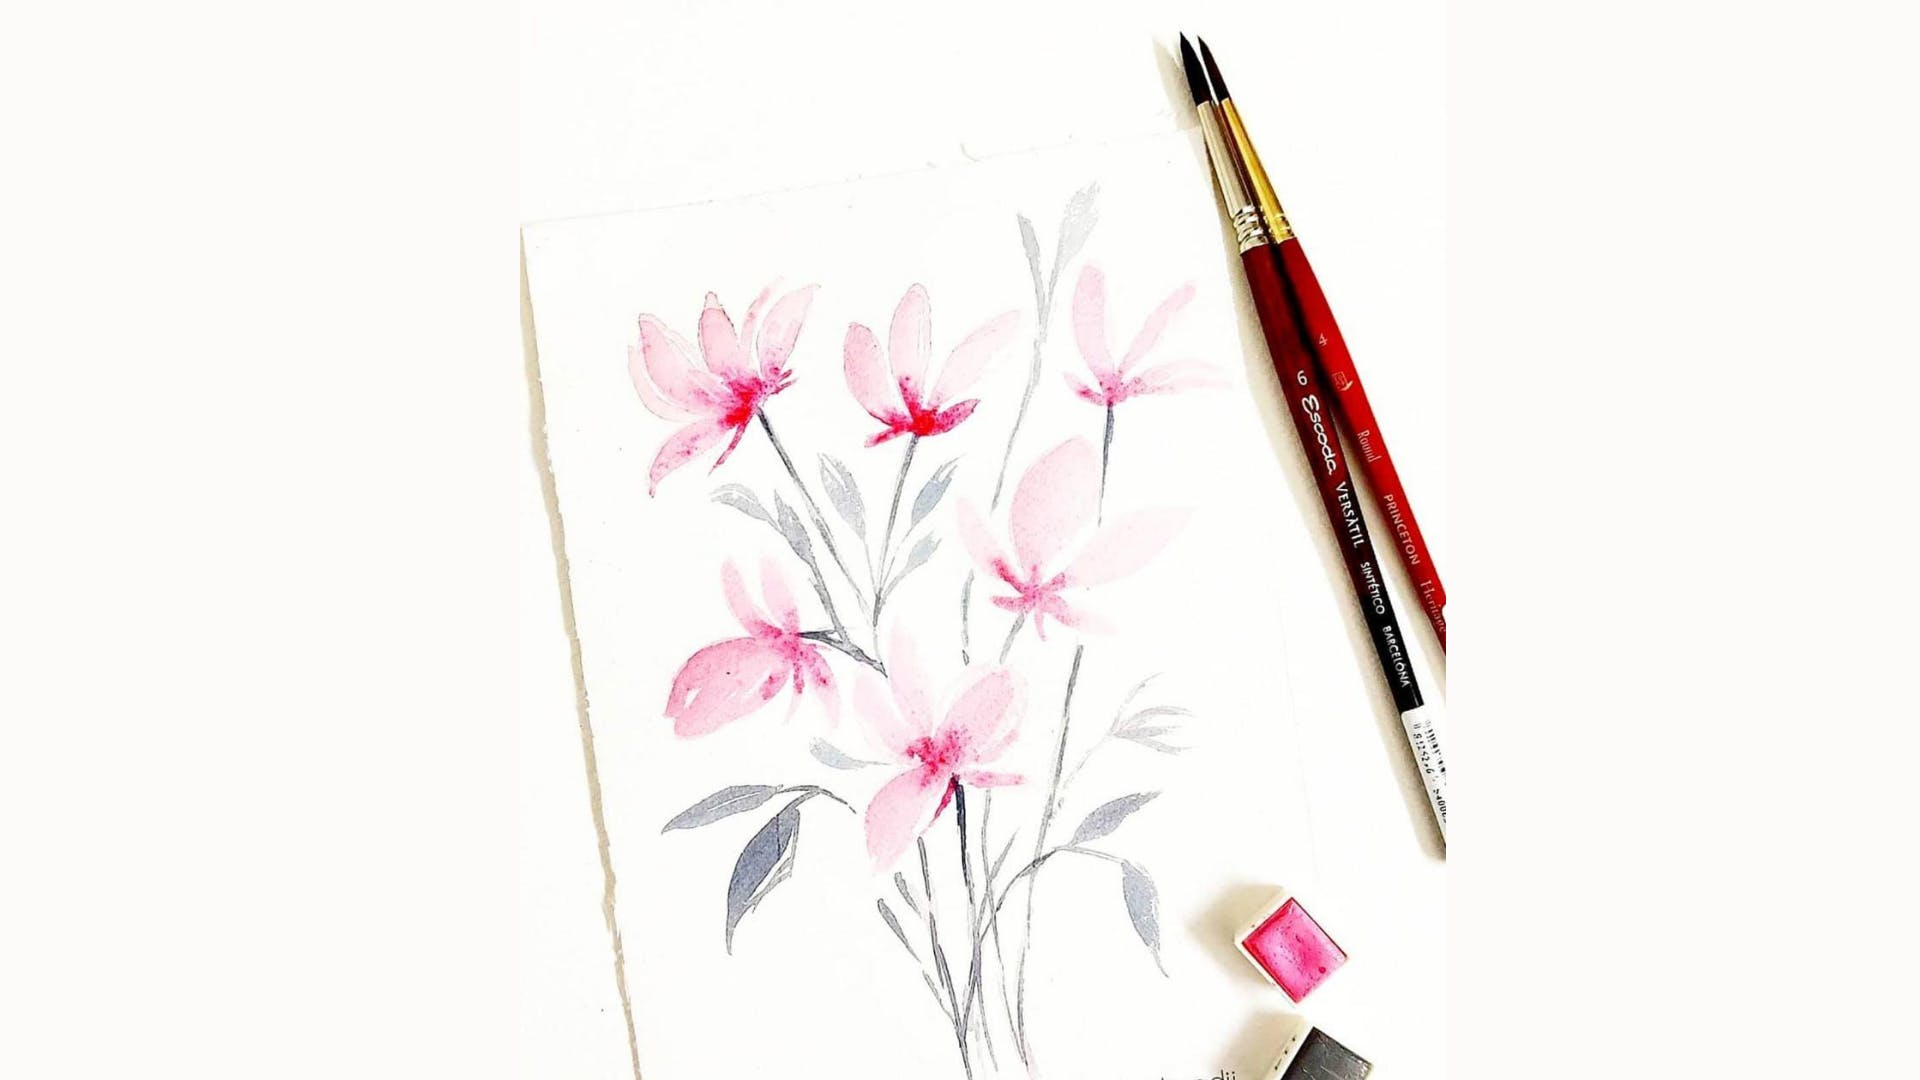 Pink,Botany,Plant,Flower,Stationery,Wildflower,Pen,Writing implement,Illustration,Watercolor paint